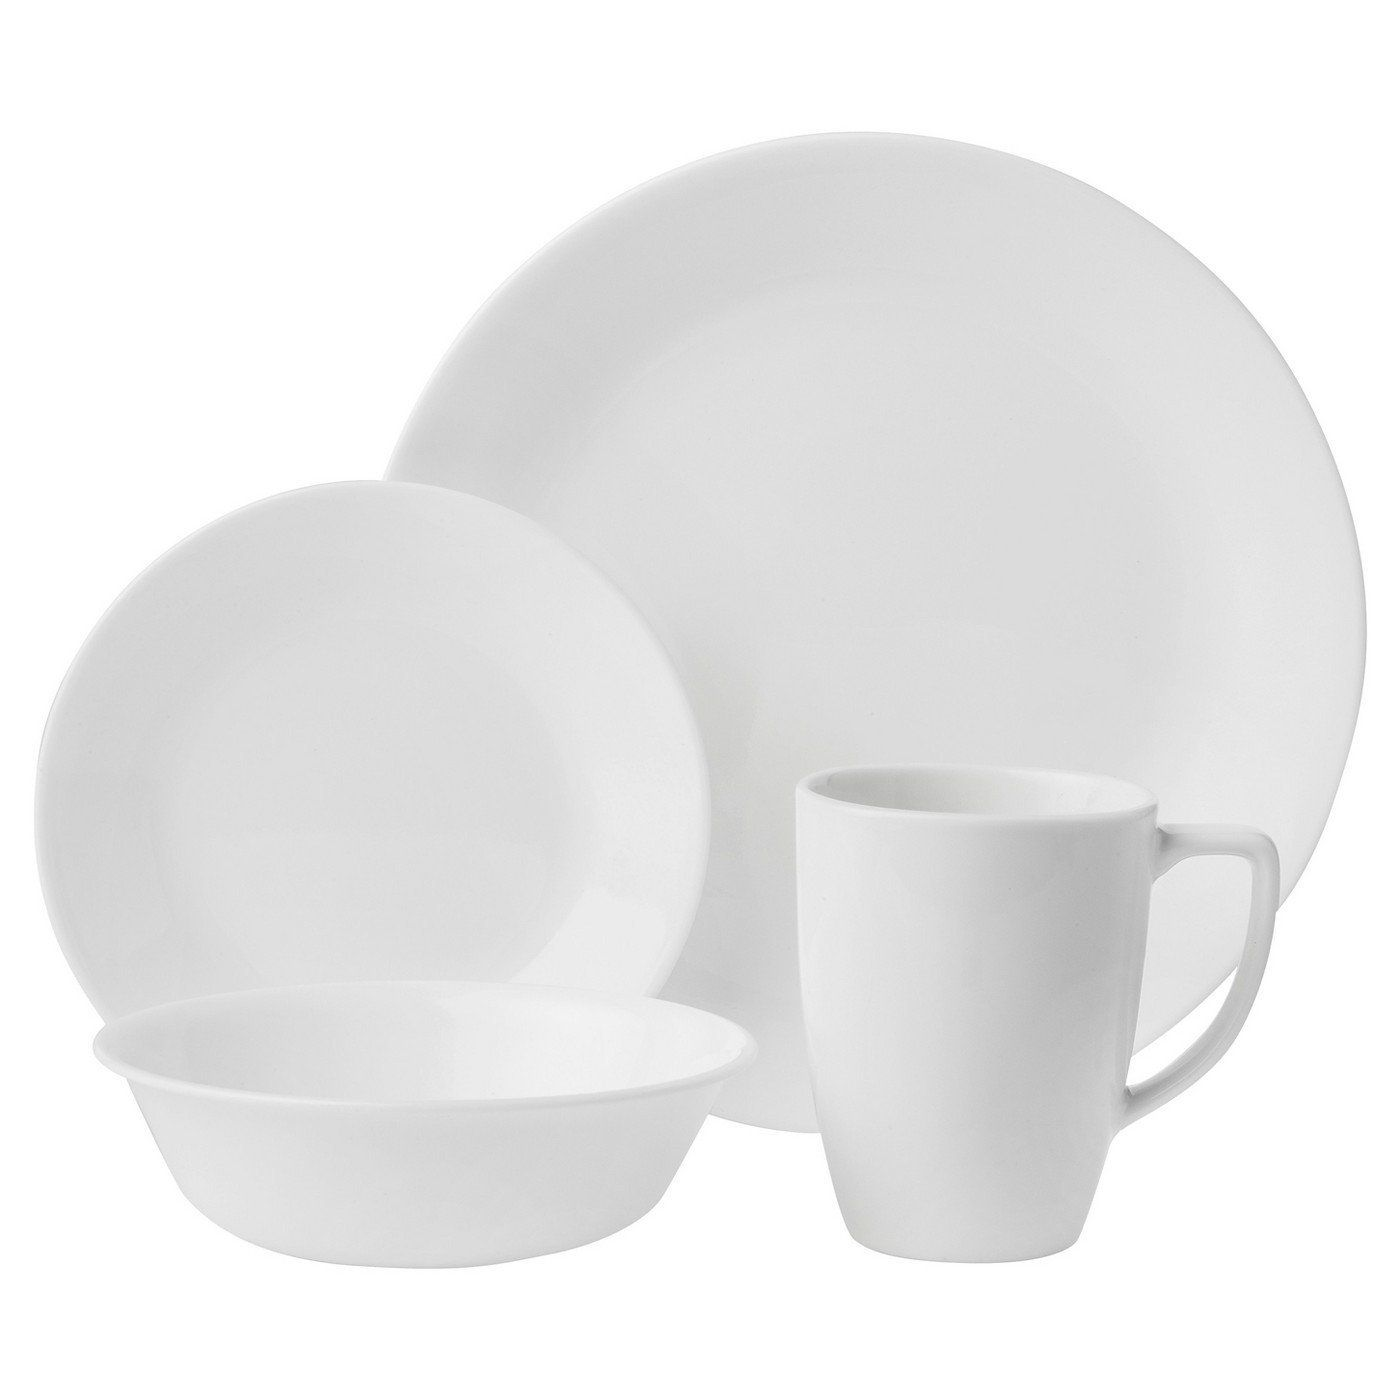 Corelle is known for making lightweight break-resistant dinnerware sets that are made of  sc 1 st  Huffington Post & 8 Durable Dinnerware Sets That Won\u0027t Break | HuffPost